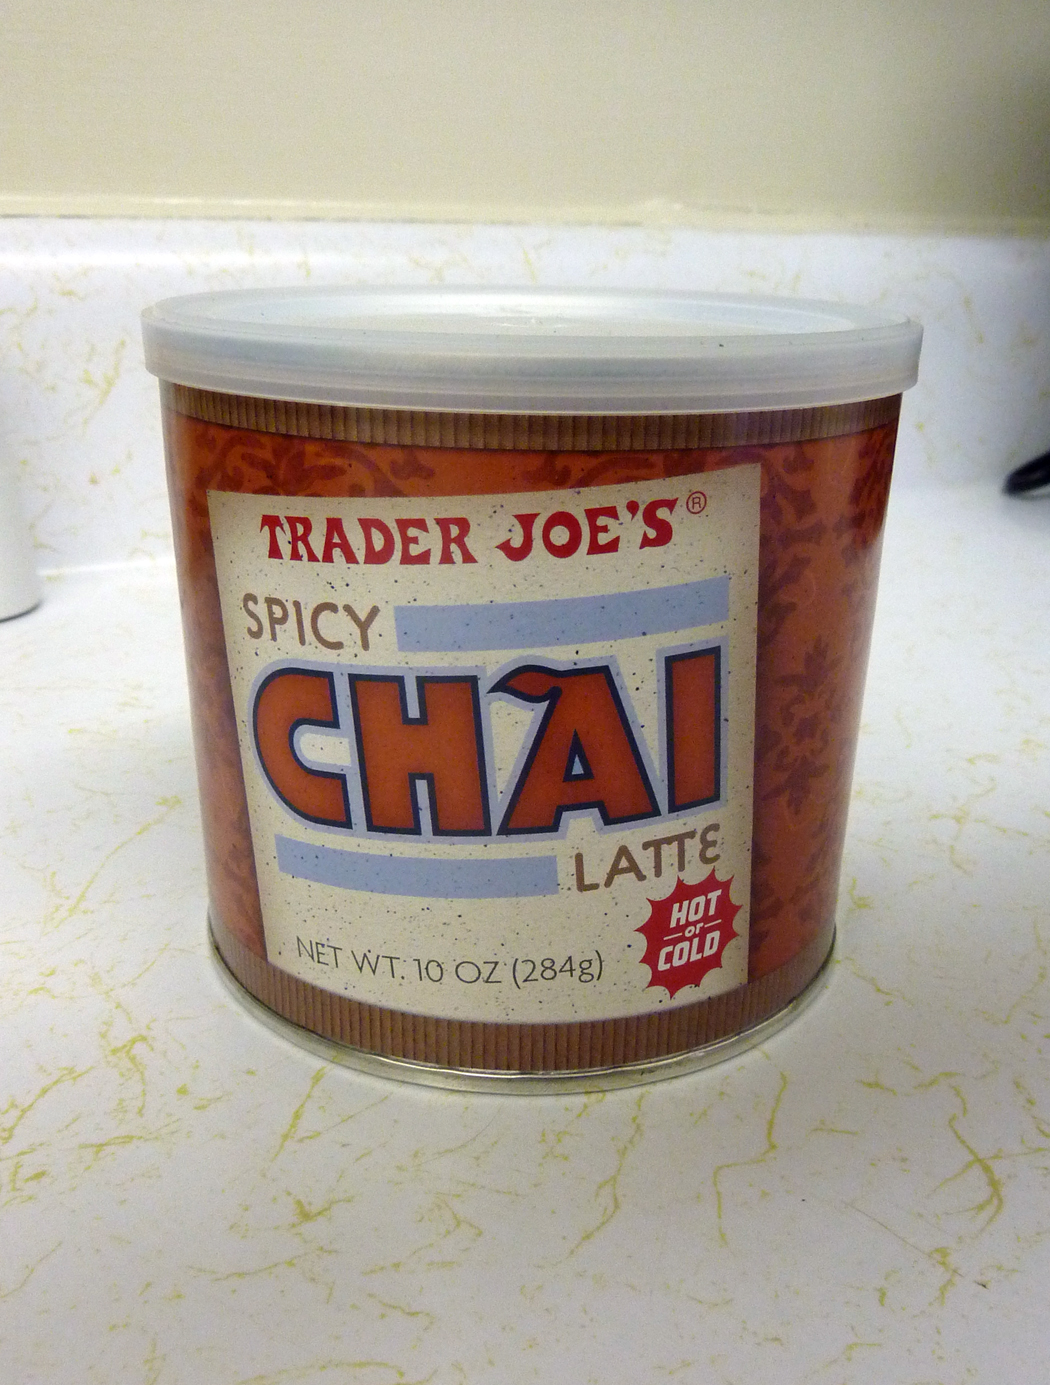 What's Good at Trader Joe's?: Trader Joe's Spicy Chai Latte